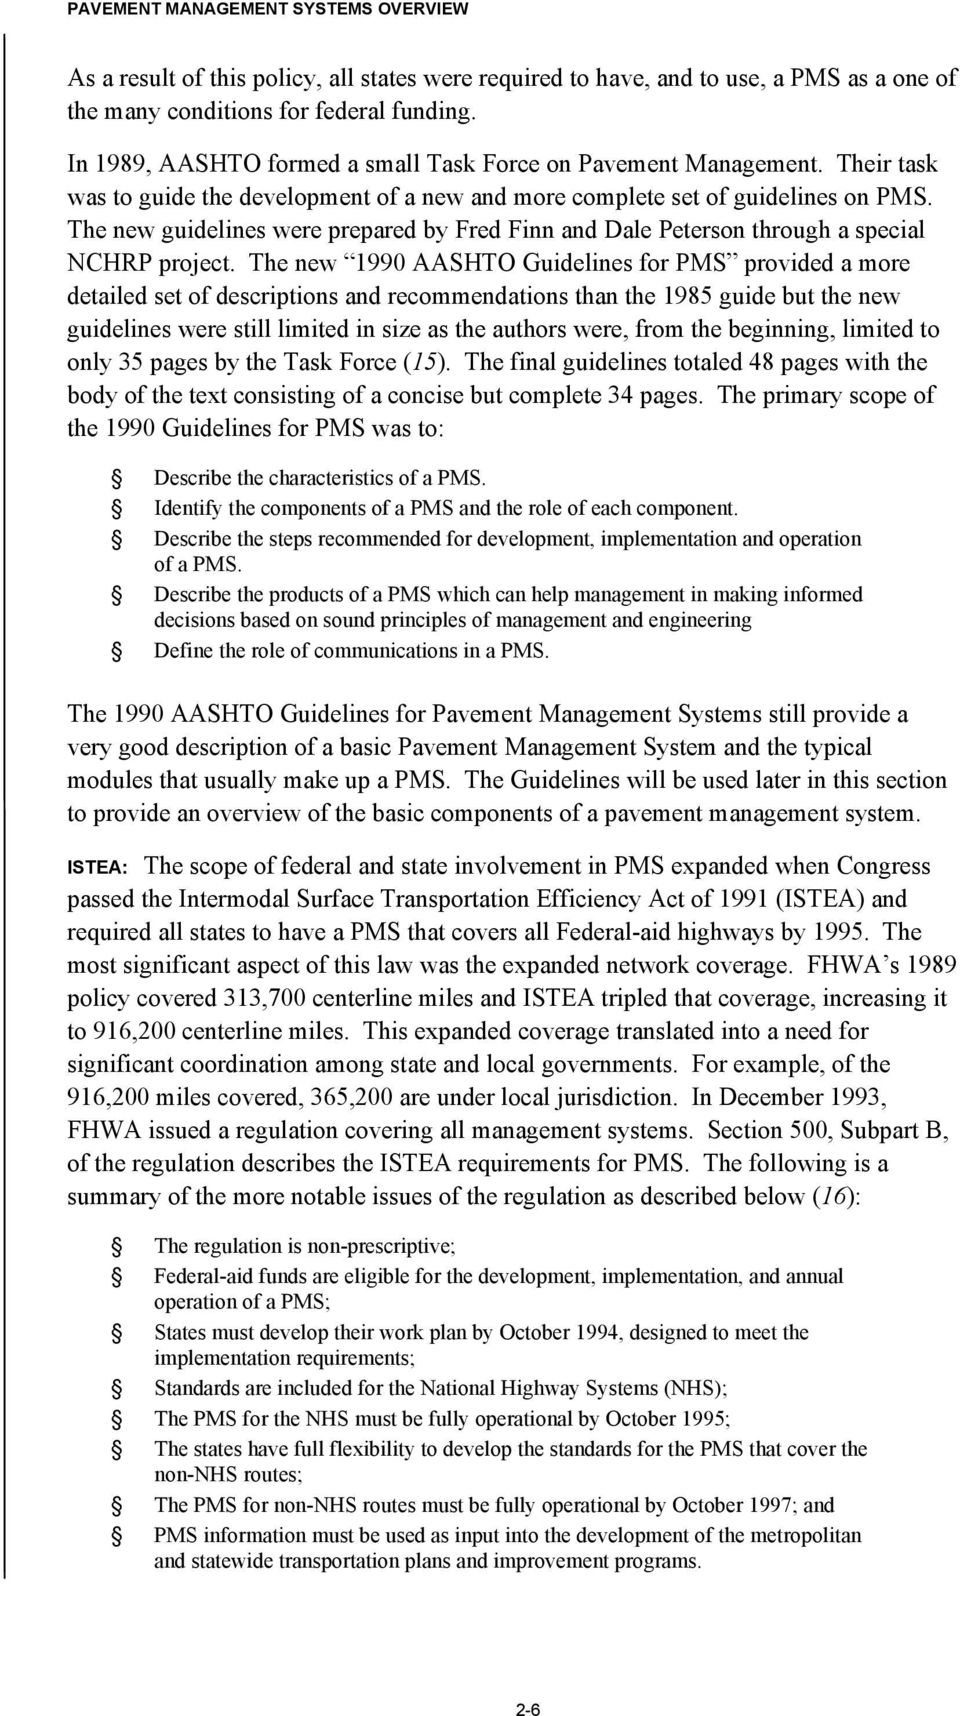 The new 1990 AASHTO Guidelines for PMS provided a more detailed set of descriptions and recommendations than the 1985 guide but the new guidelines were still limited in size as the authors were, from